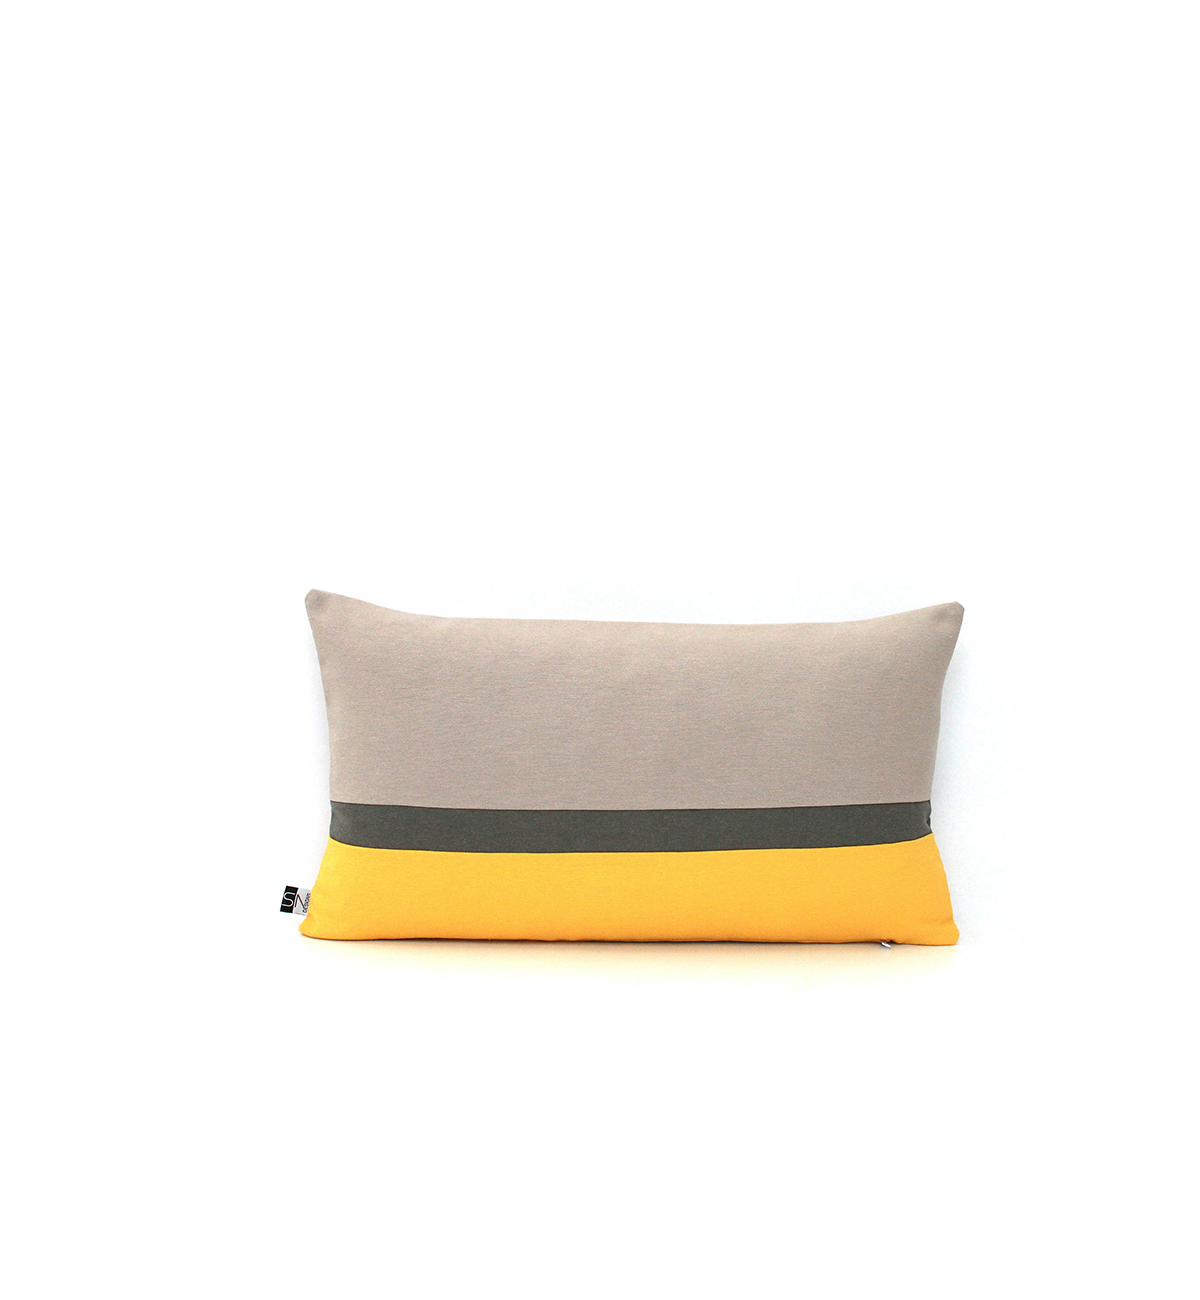 Gen Z yellow and gray pillow